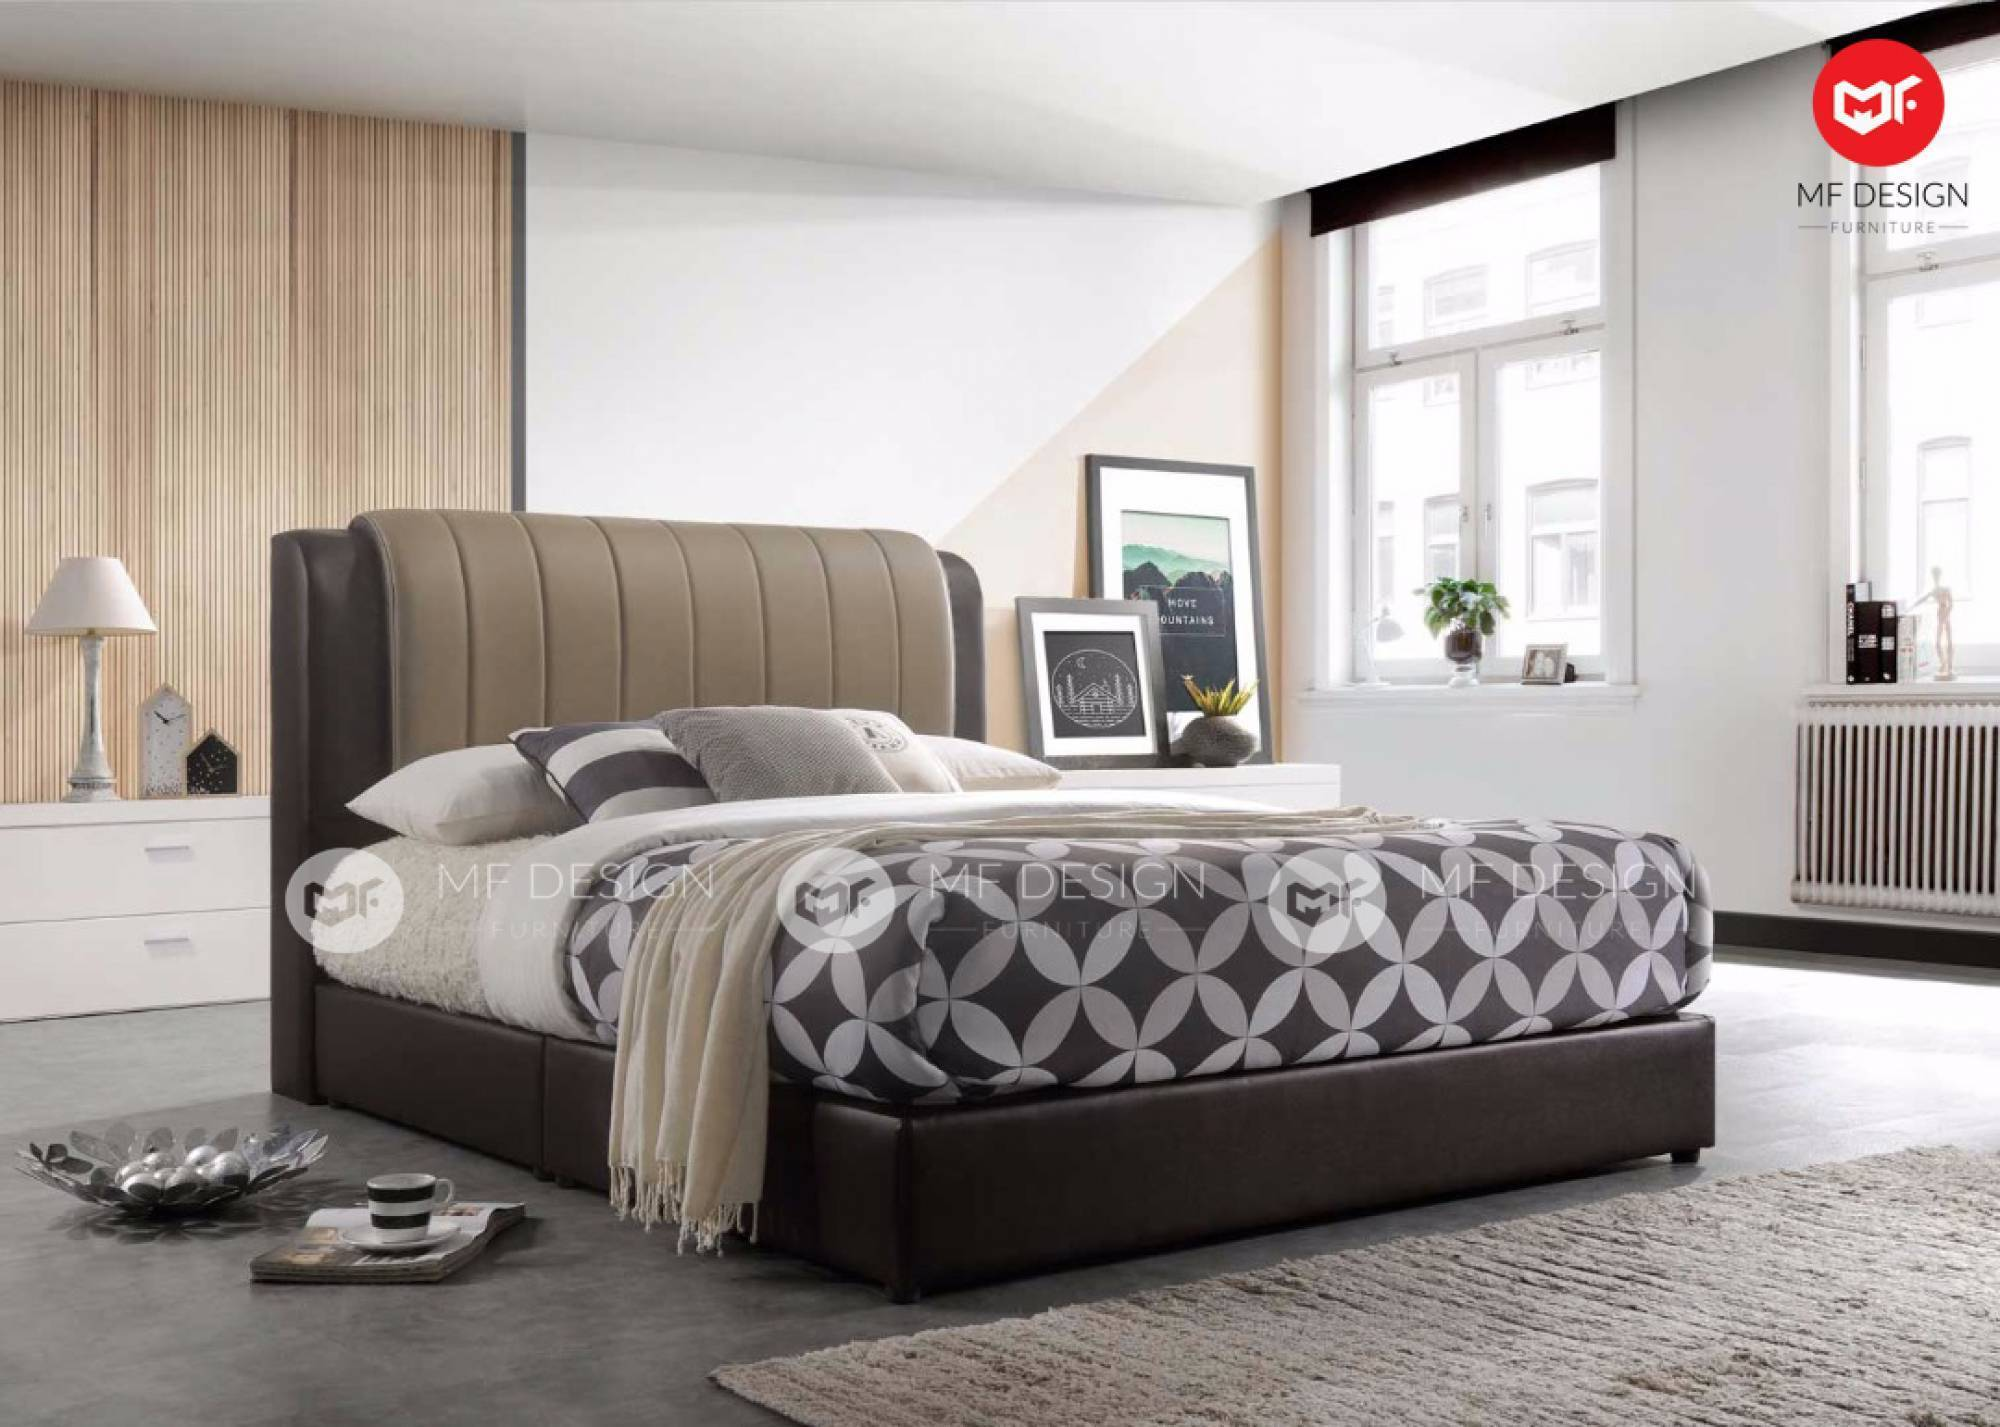 mfdesign88 TRISTAN QUEEN SIZE DIVAN BED